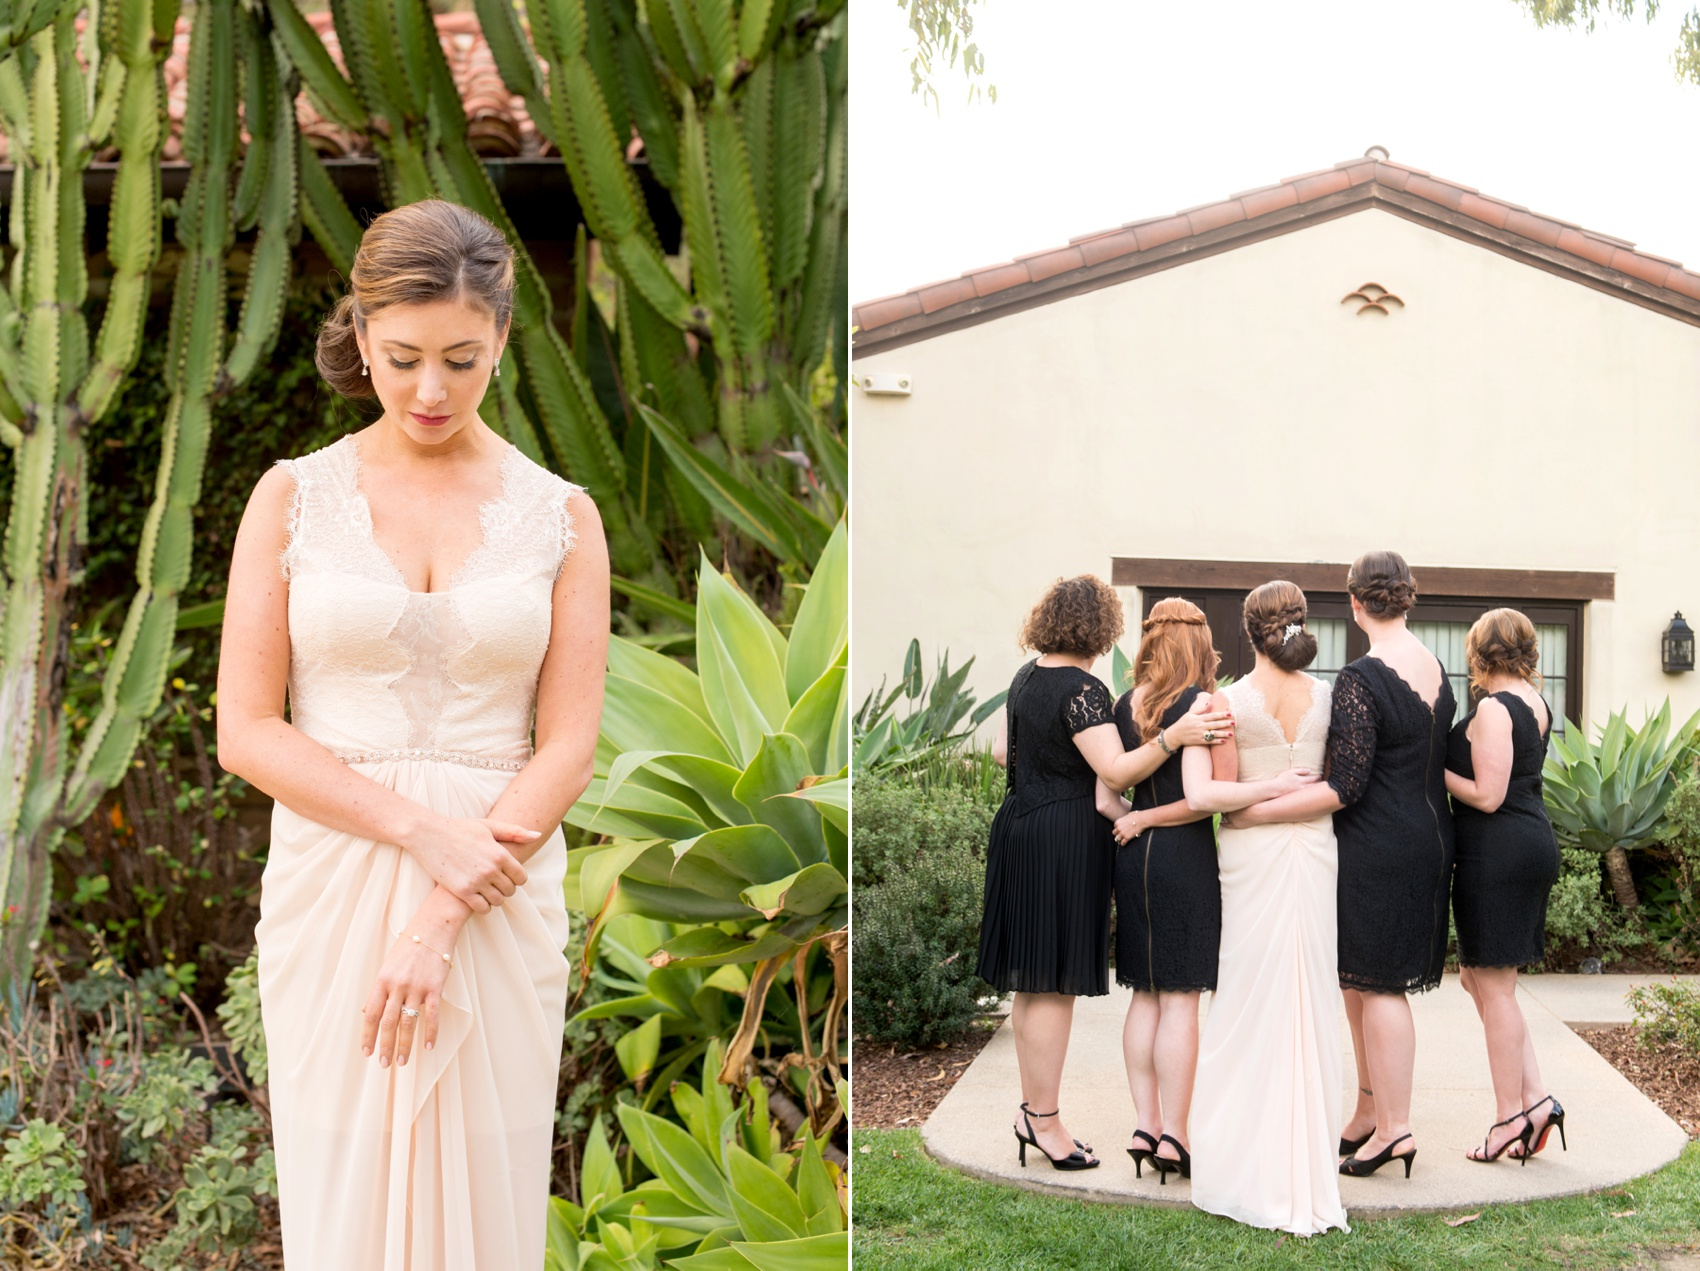 Estancia La Jolla wedding photography by Mikkel Paige Photography. Tropical wedding, California coast. Bride and groom photos. Bridesmaids in black lace and pink wedding dress with bridal party.